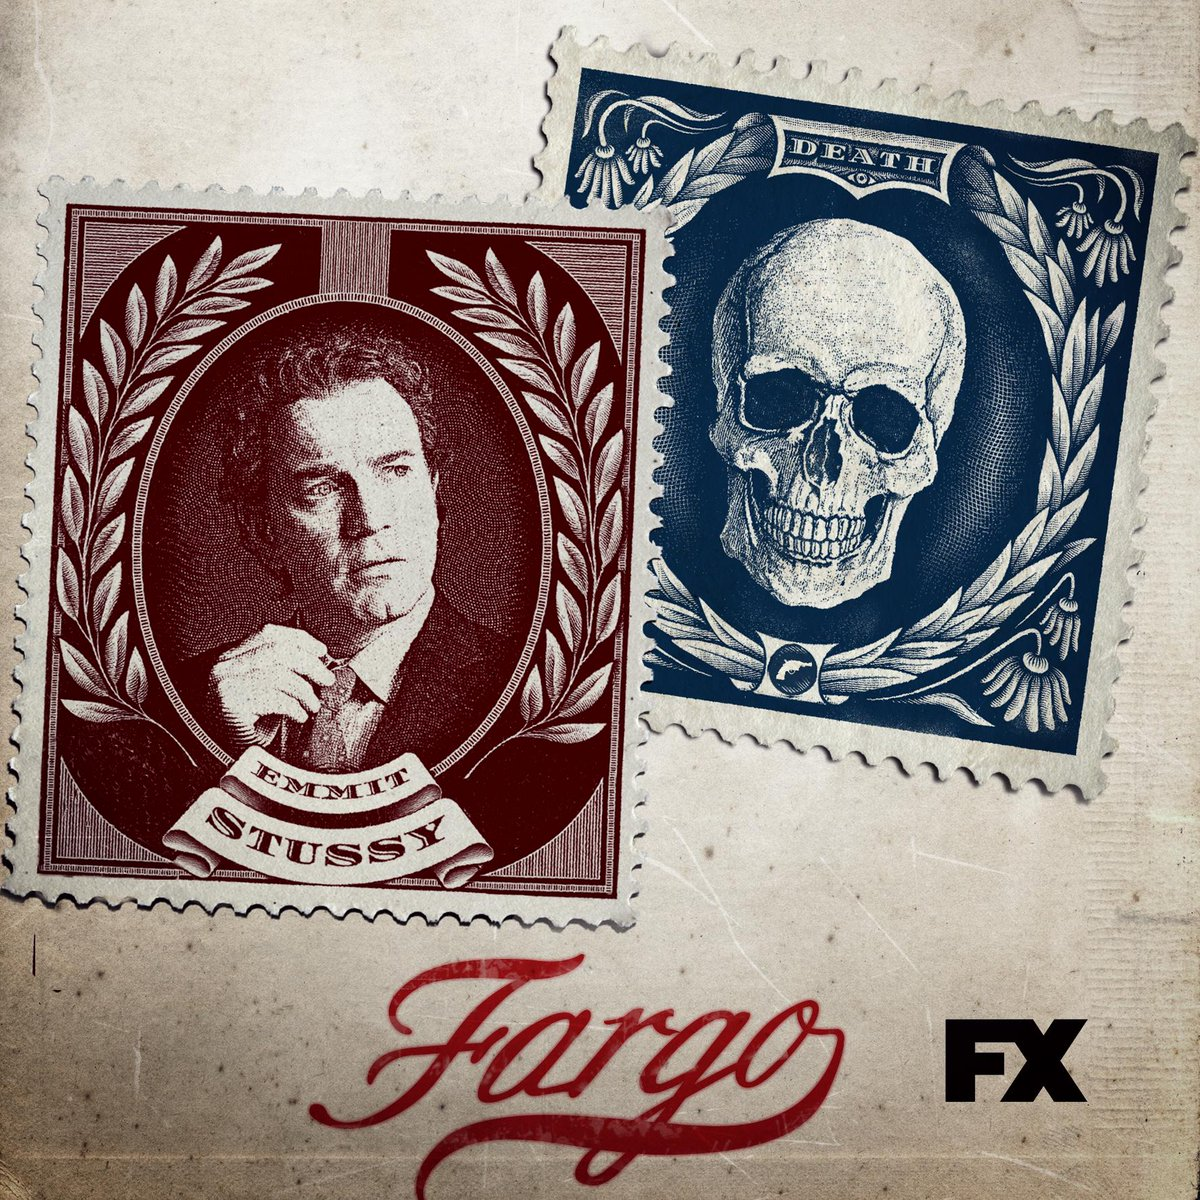 Some consequences are deadly on #Fargo.